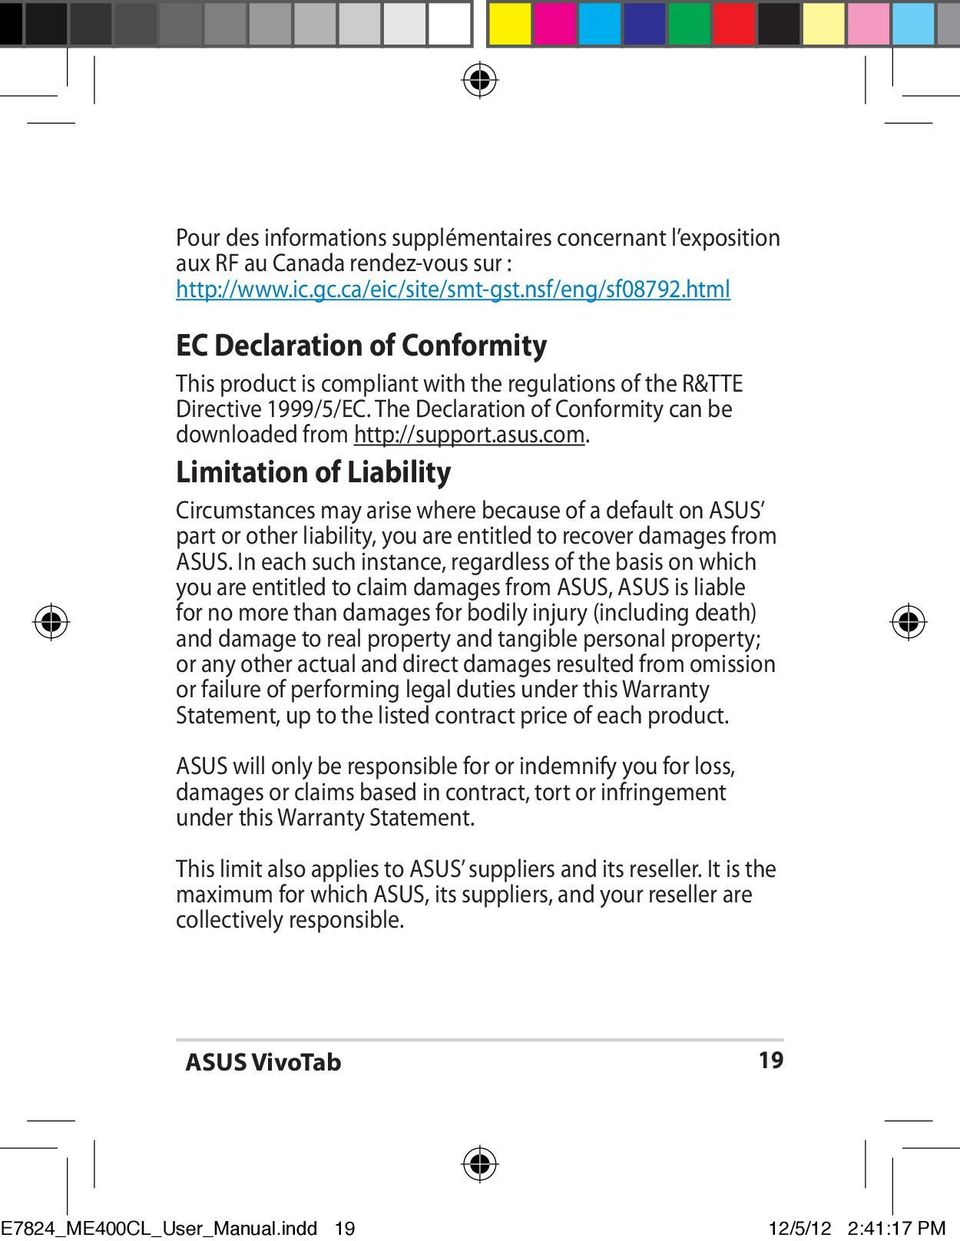 liant with the regulations of the R&TTE Directive 1999/5/EC. The Declaration of Conformity can be downloaded from http://support.asus.com.